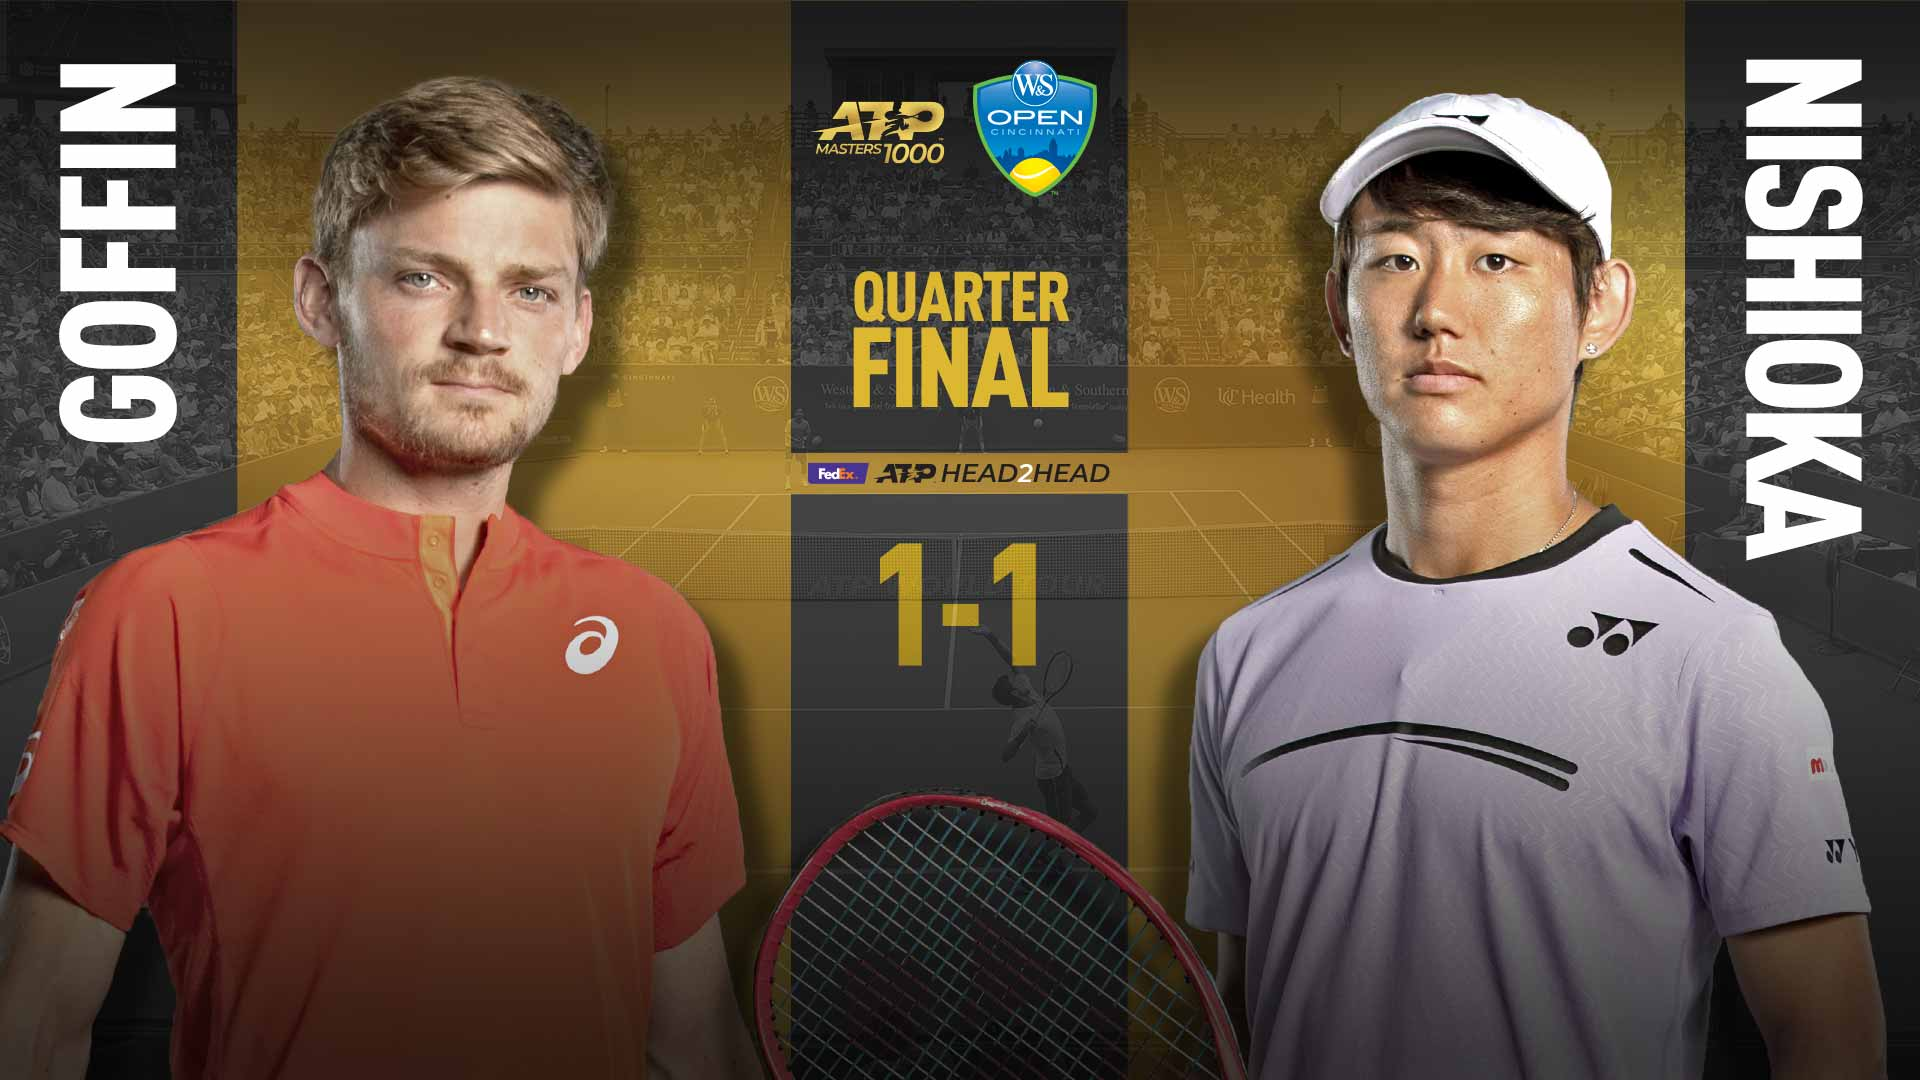 David Goffin and Yoshihito Nishioka will face off on Friday in the quarter-finals of the Western & Southern Open in Cincinnati